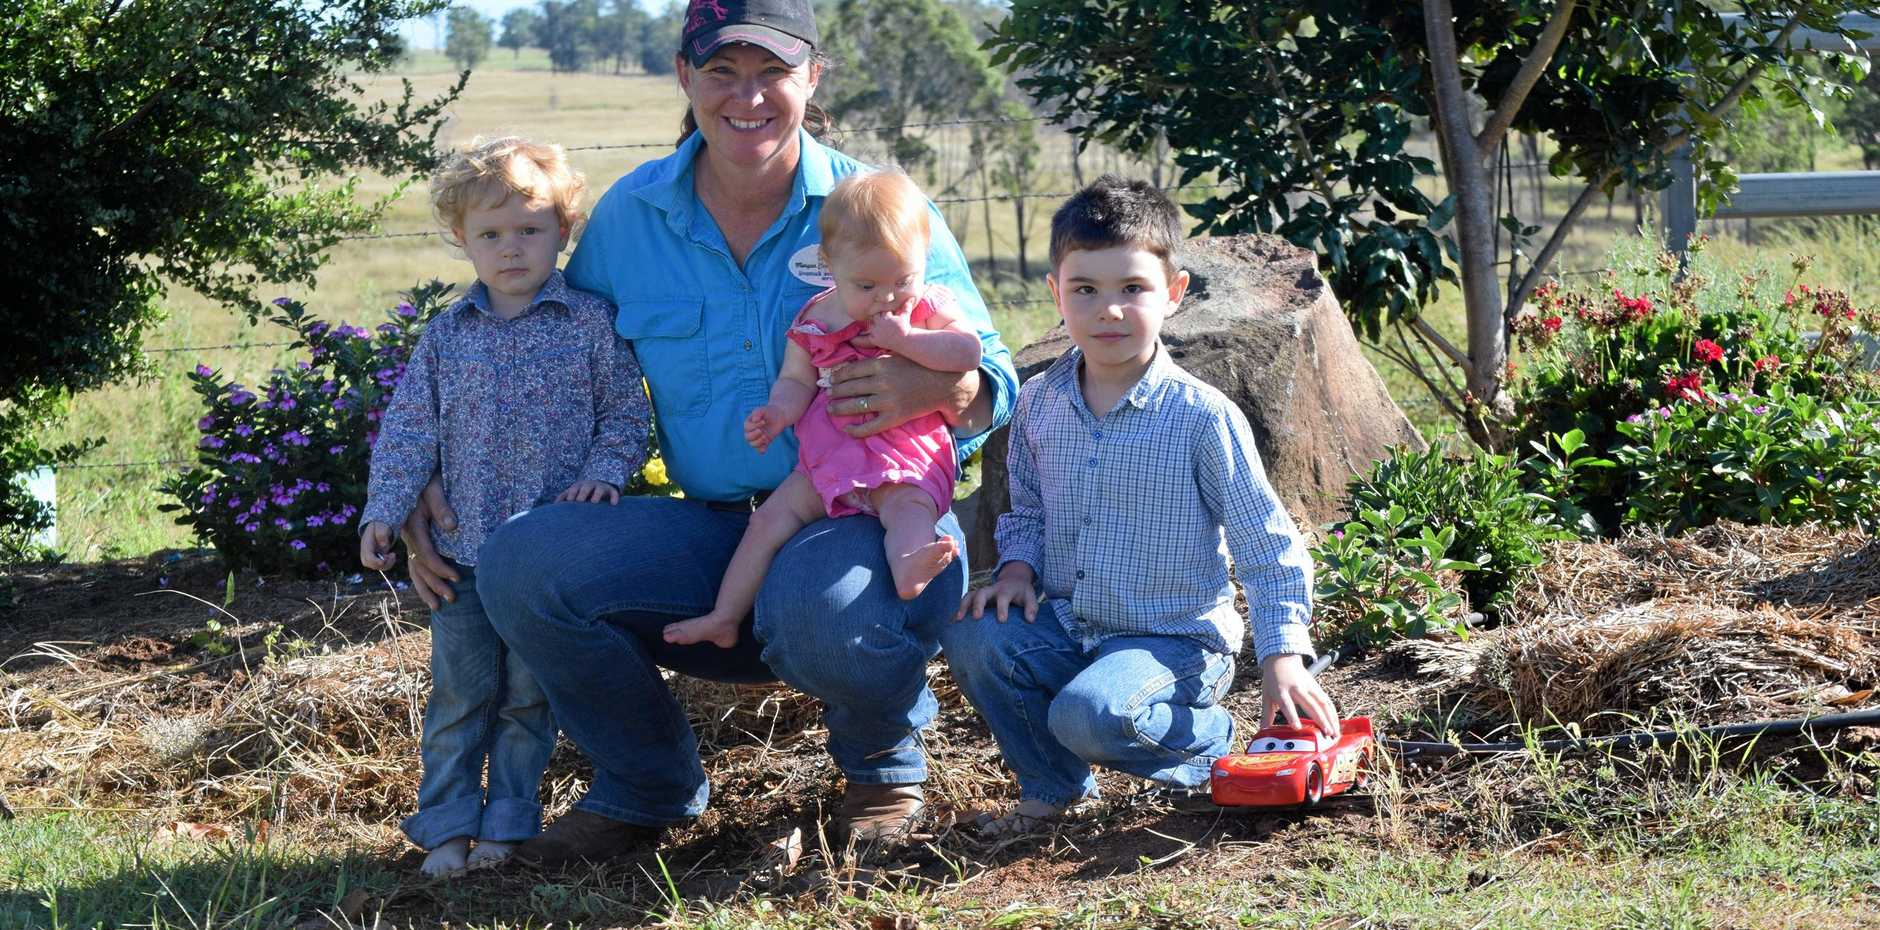 NO SERVICE: Residents are fed up in the Boynewood area over a lack of phone service. Jodi Morgan (pictured) with her three children at their rental property.